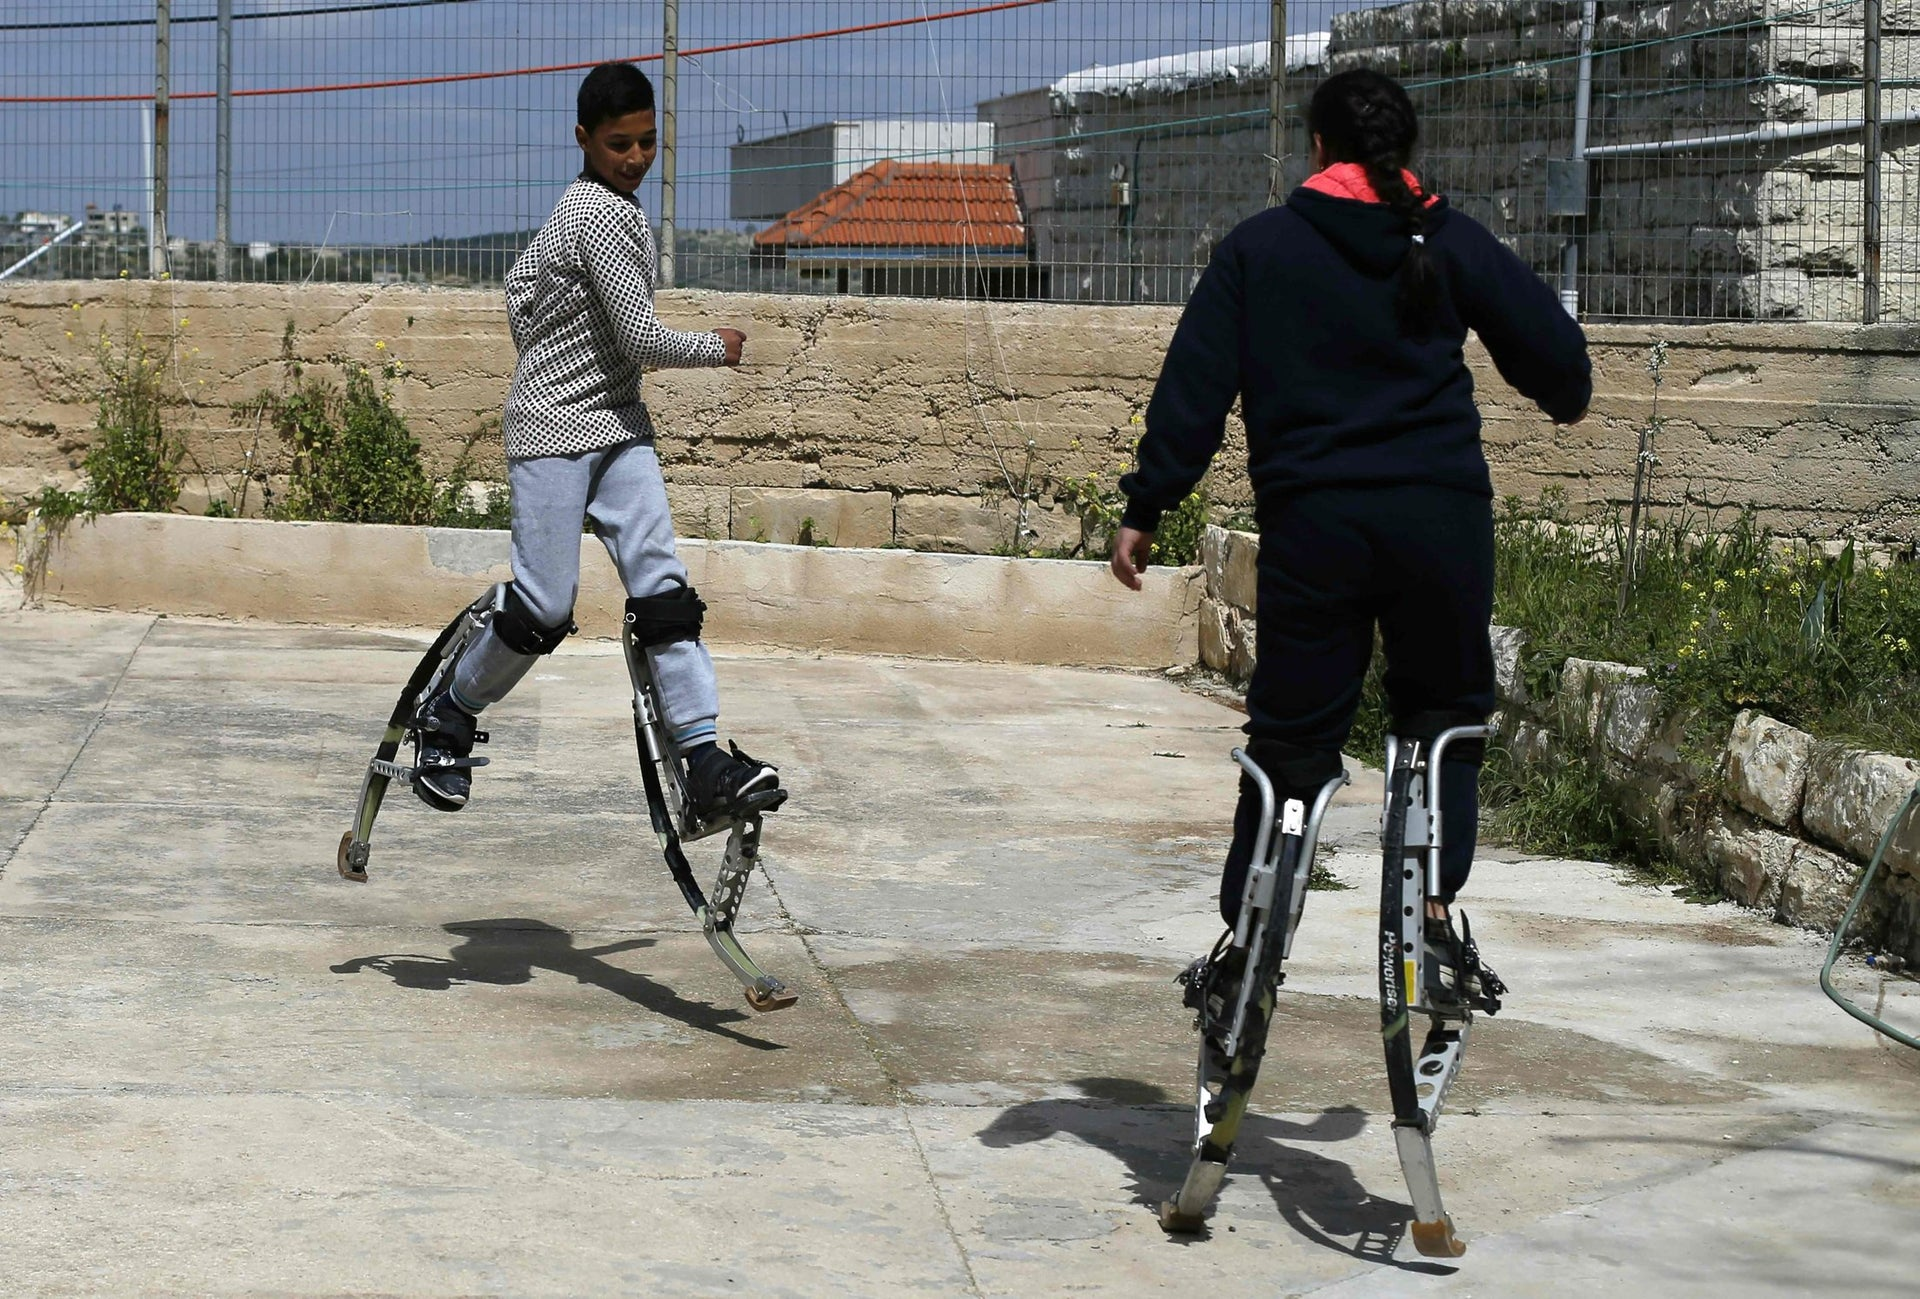 Young Palestinians train on long legs at the Palestinian Circus School in the village of Bir Zeit, near Ramallah on March 22, 2016.